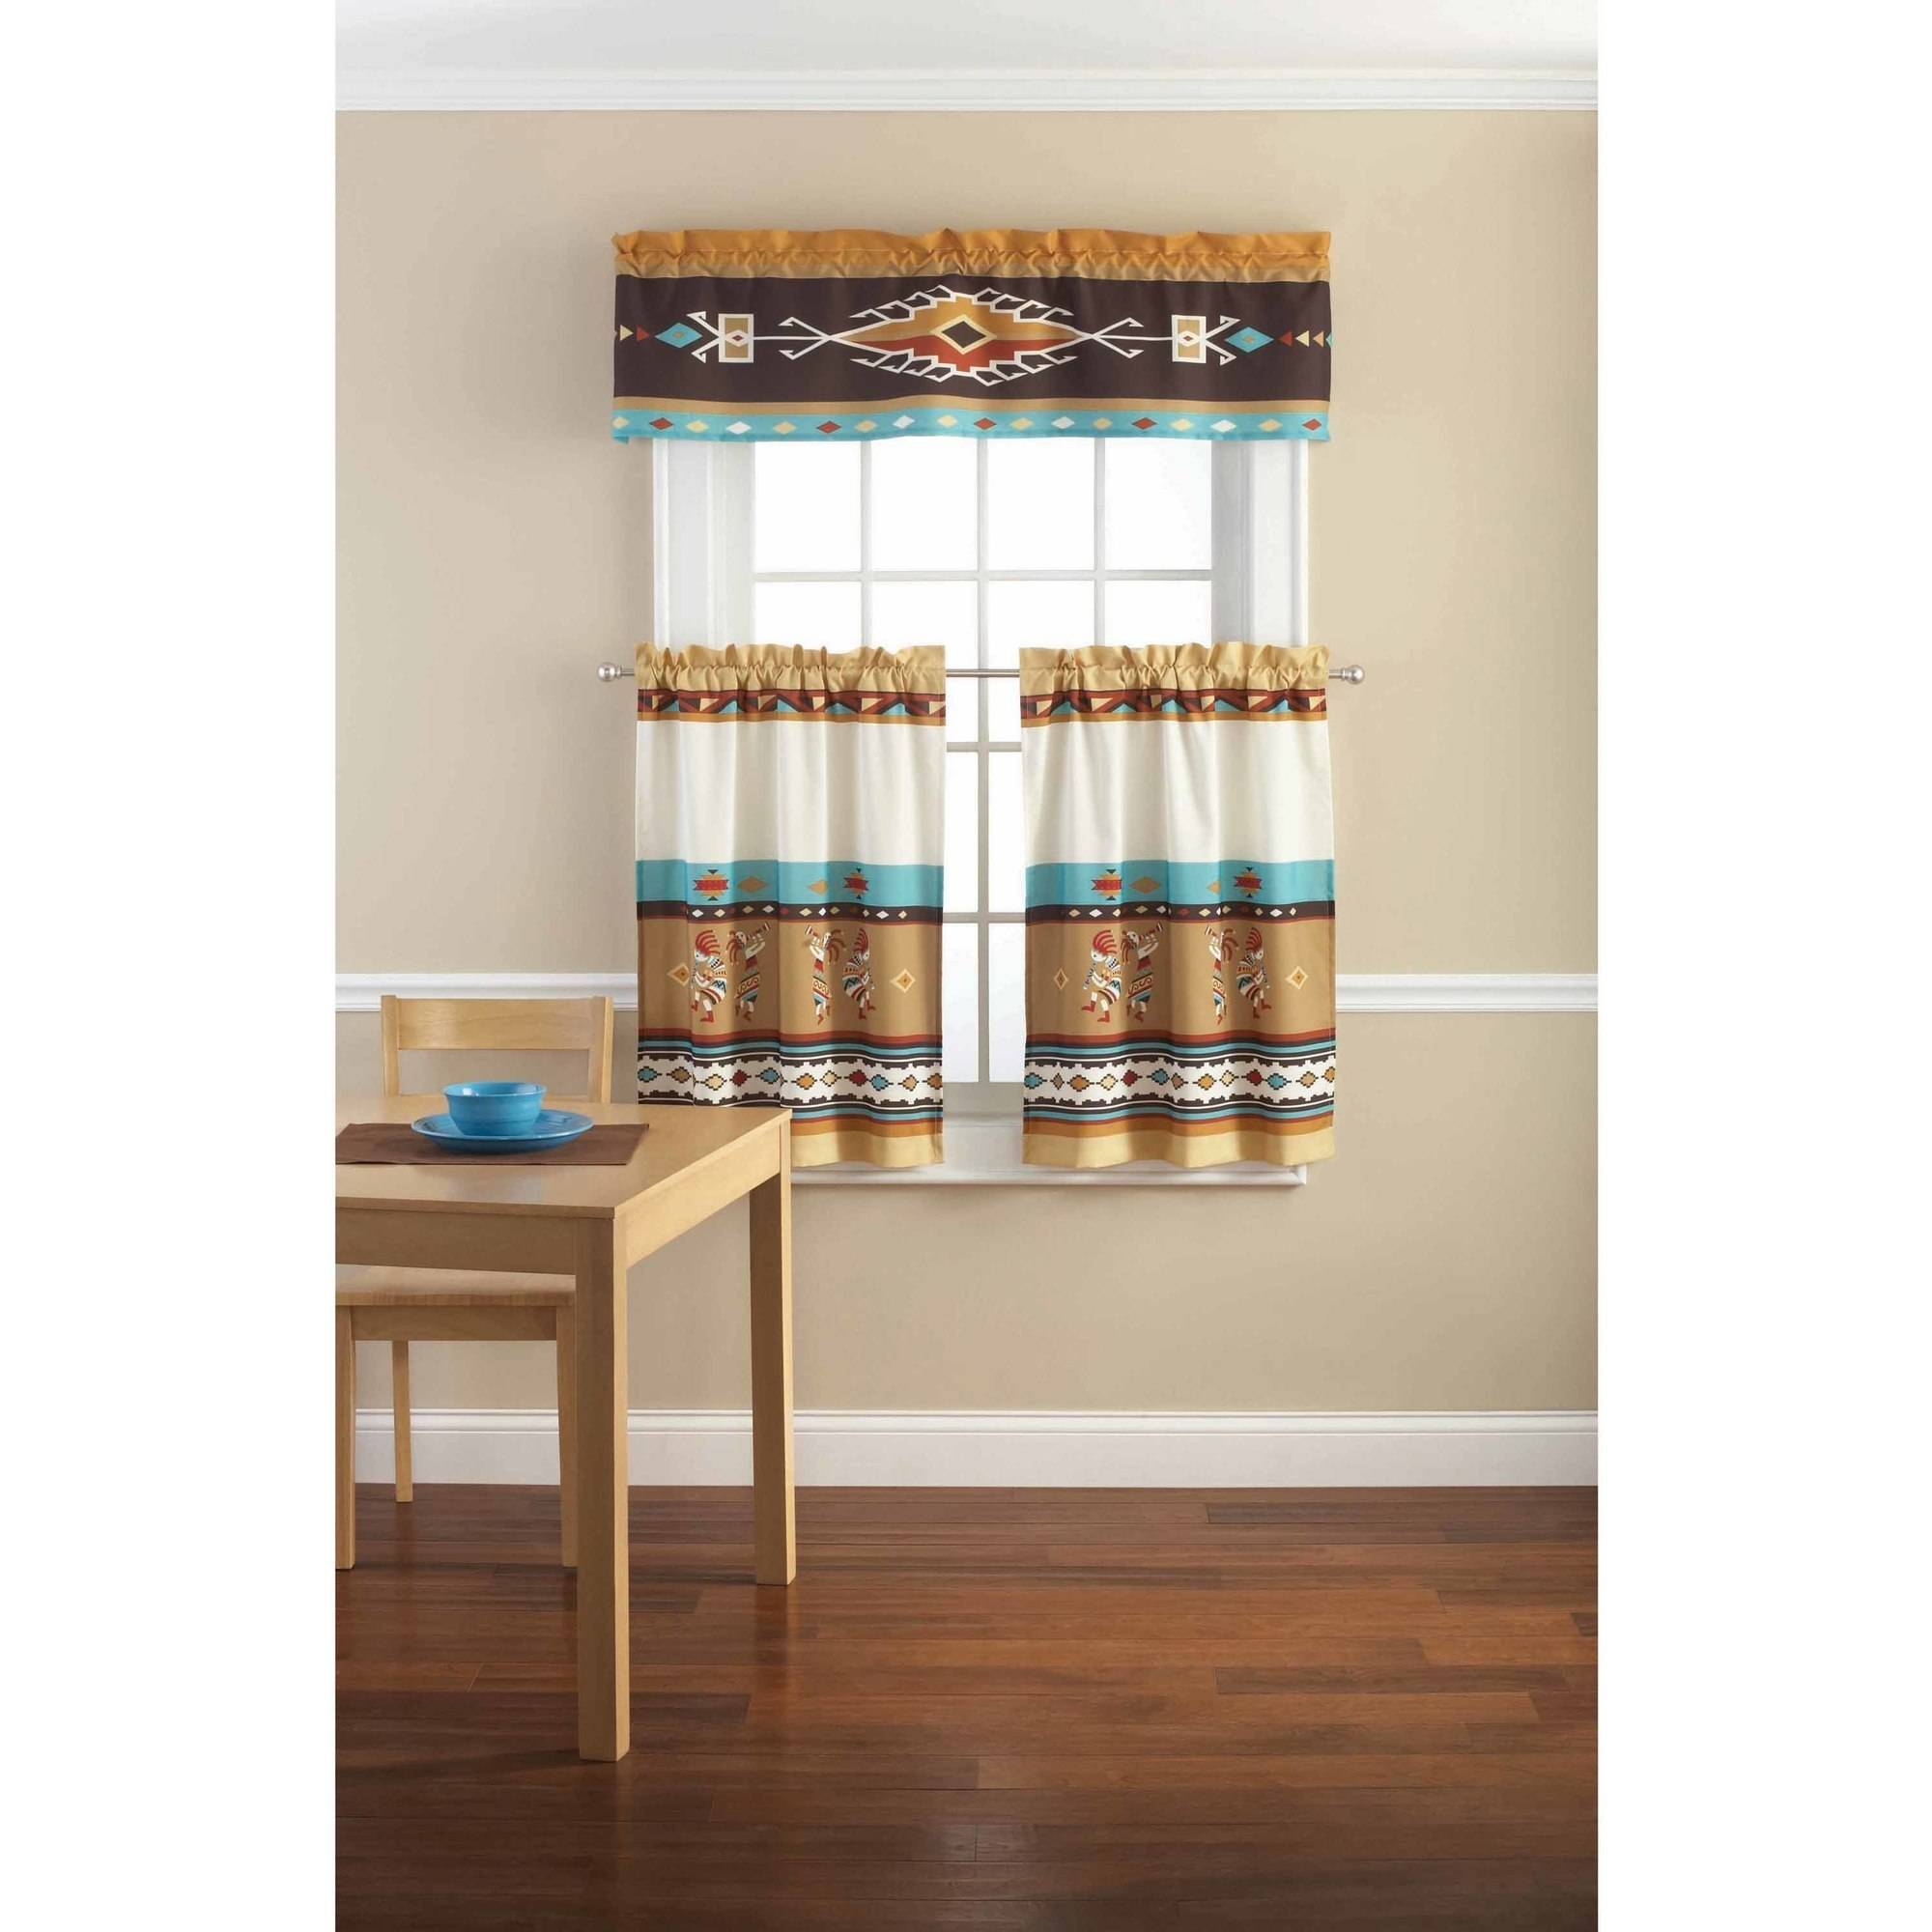 Mainstays Kokopelli Printed Valance And Kitchen Curtains Set   Walmart.com